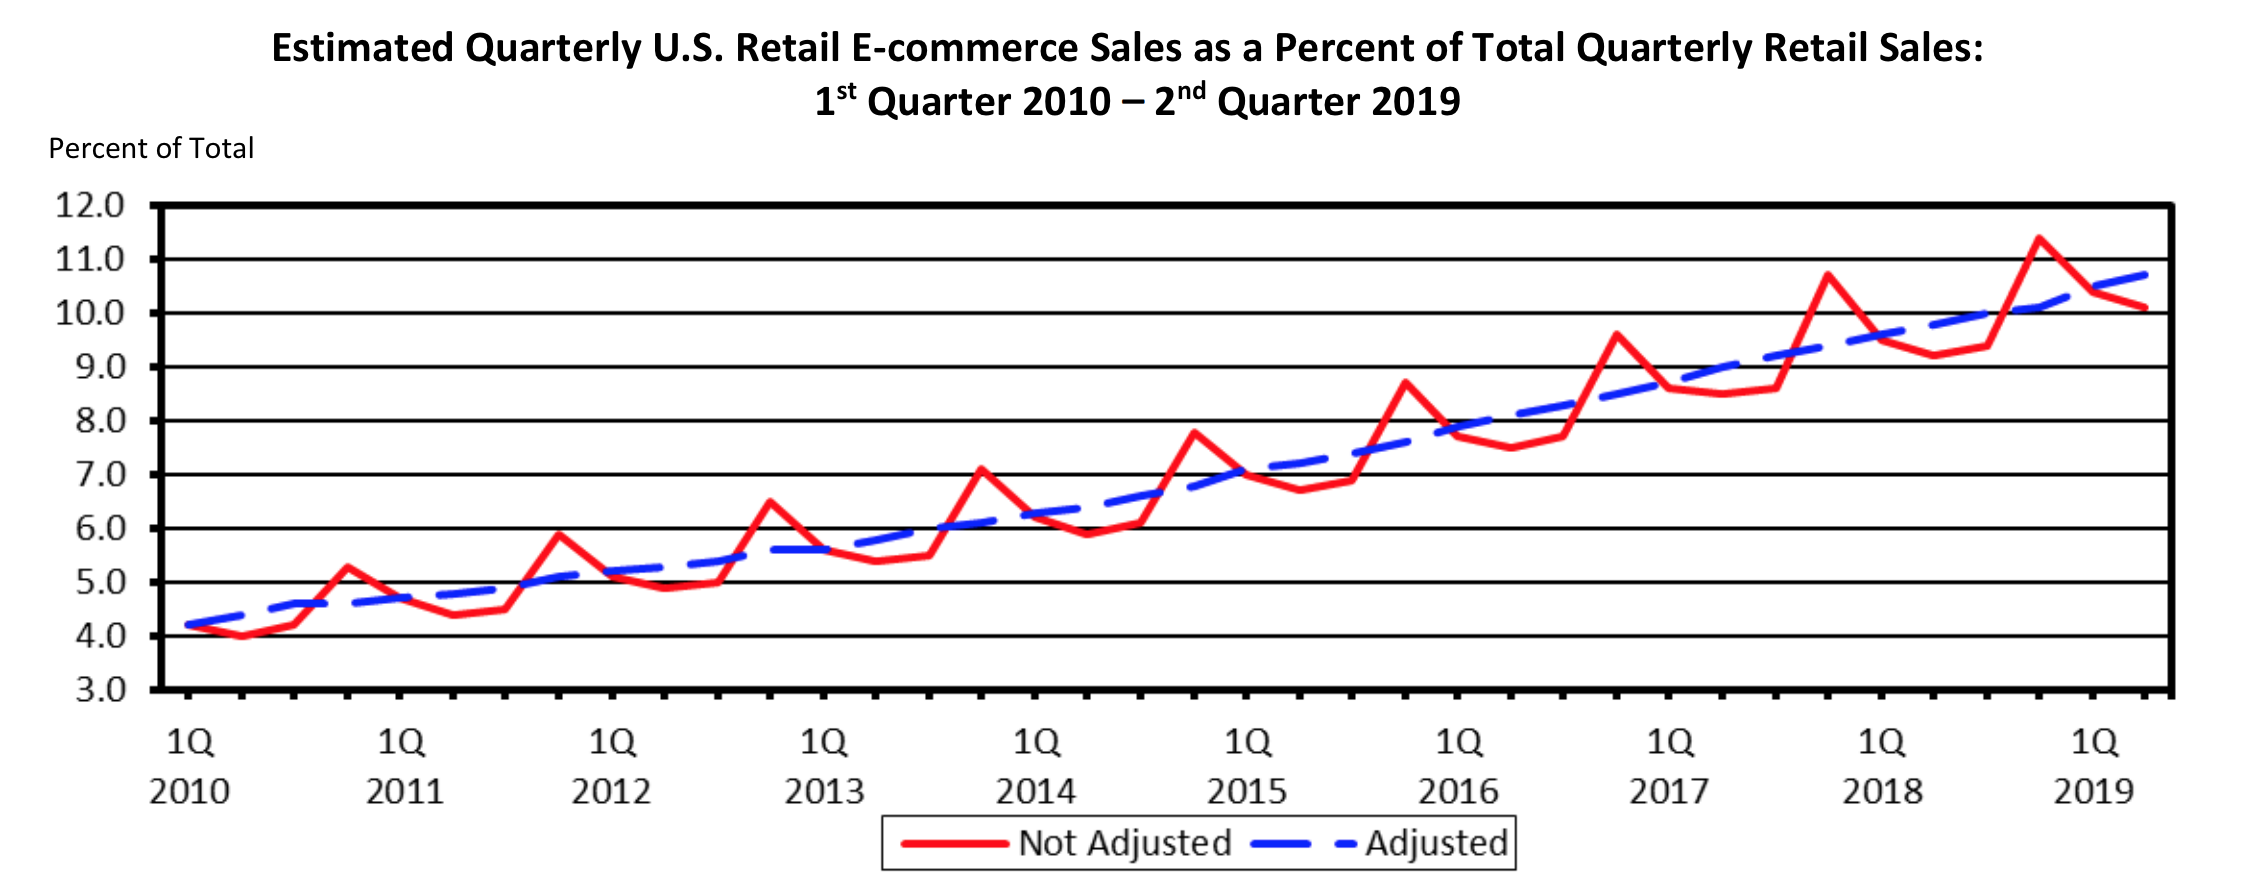 Estimated Quarterly U.S Retail E-commerce Sales as a Percent of Total Quarterly Retail Sales, from 1st quarter of 2010 to 2nd quarter of 2019